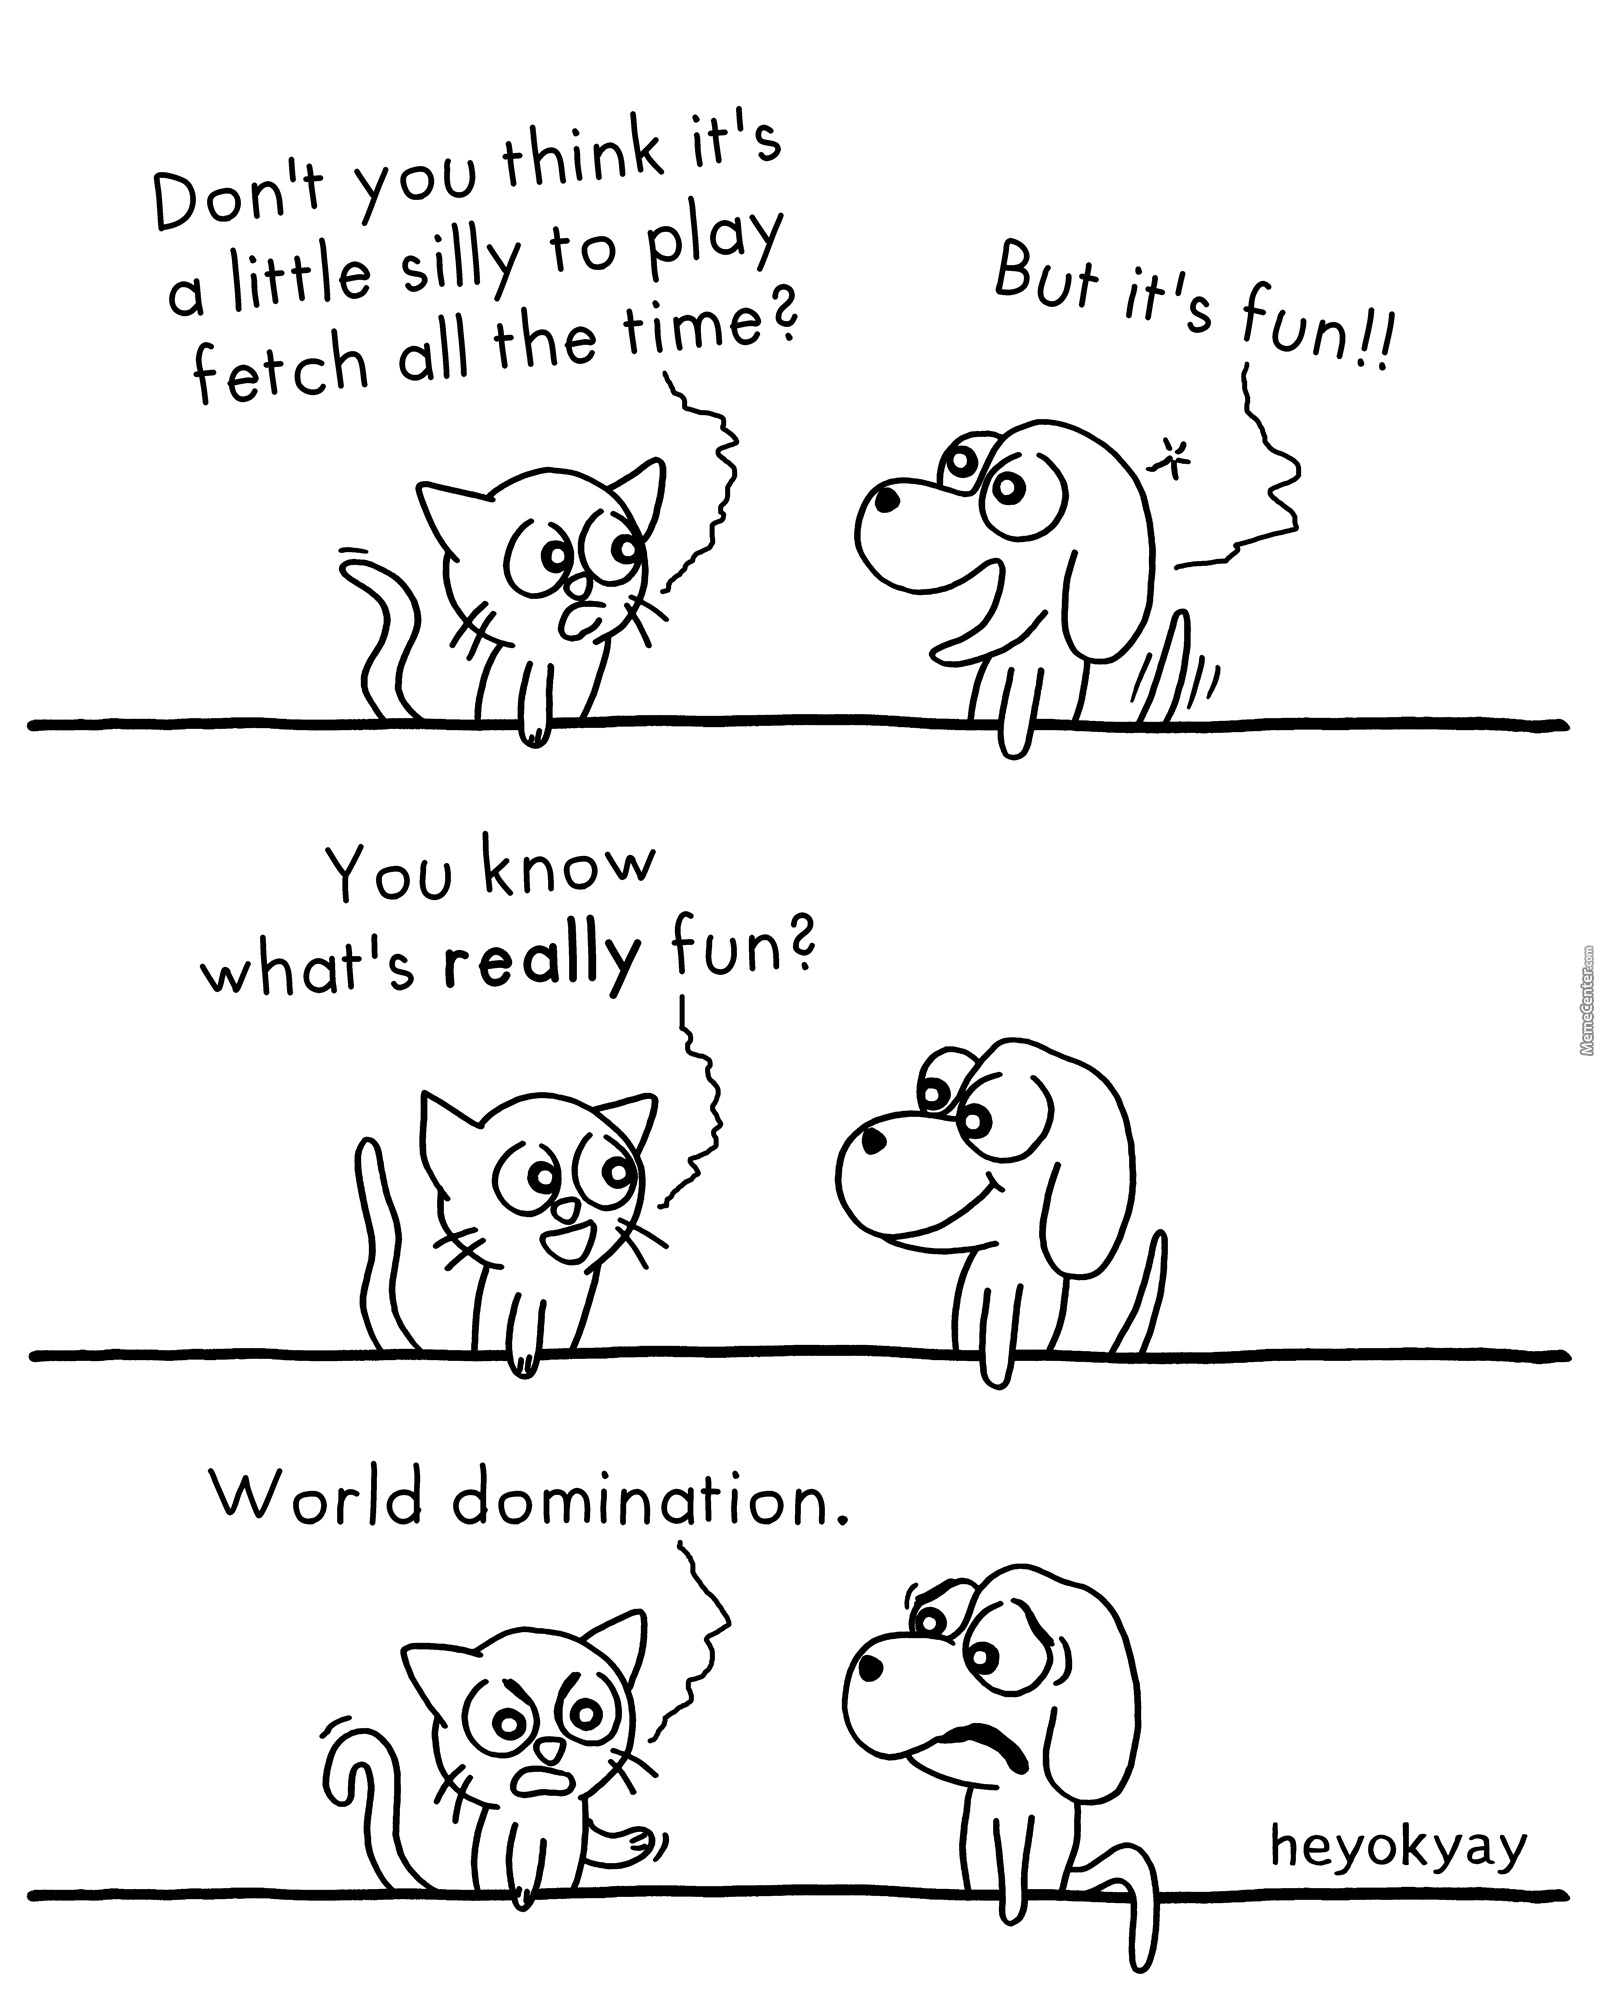 Cats And Dogs: The Small Differences